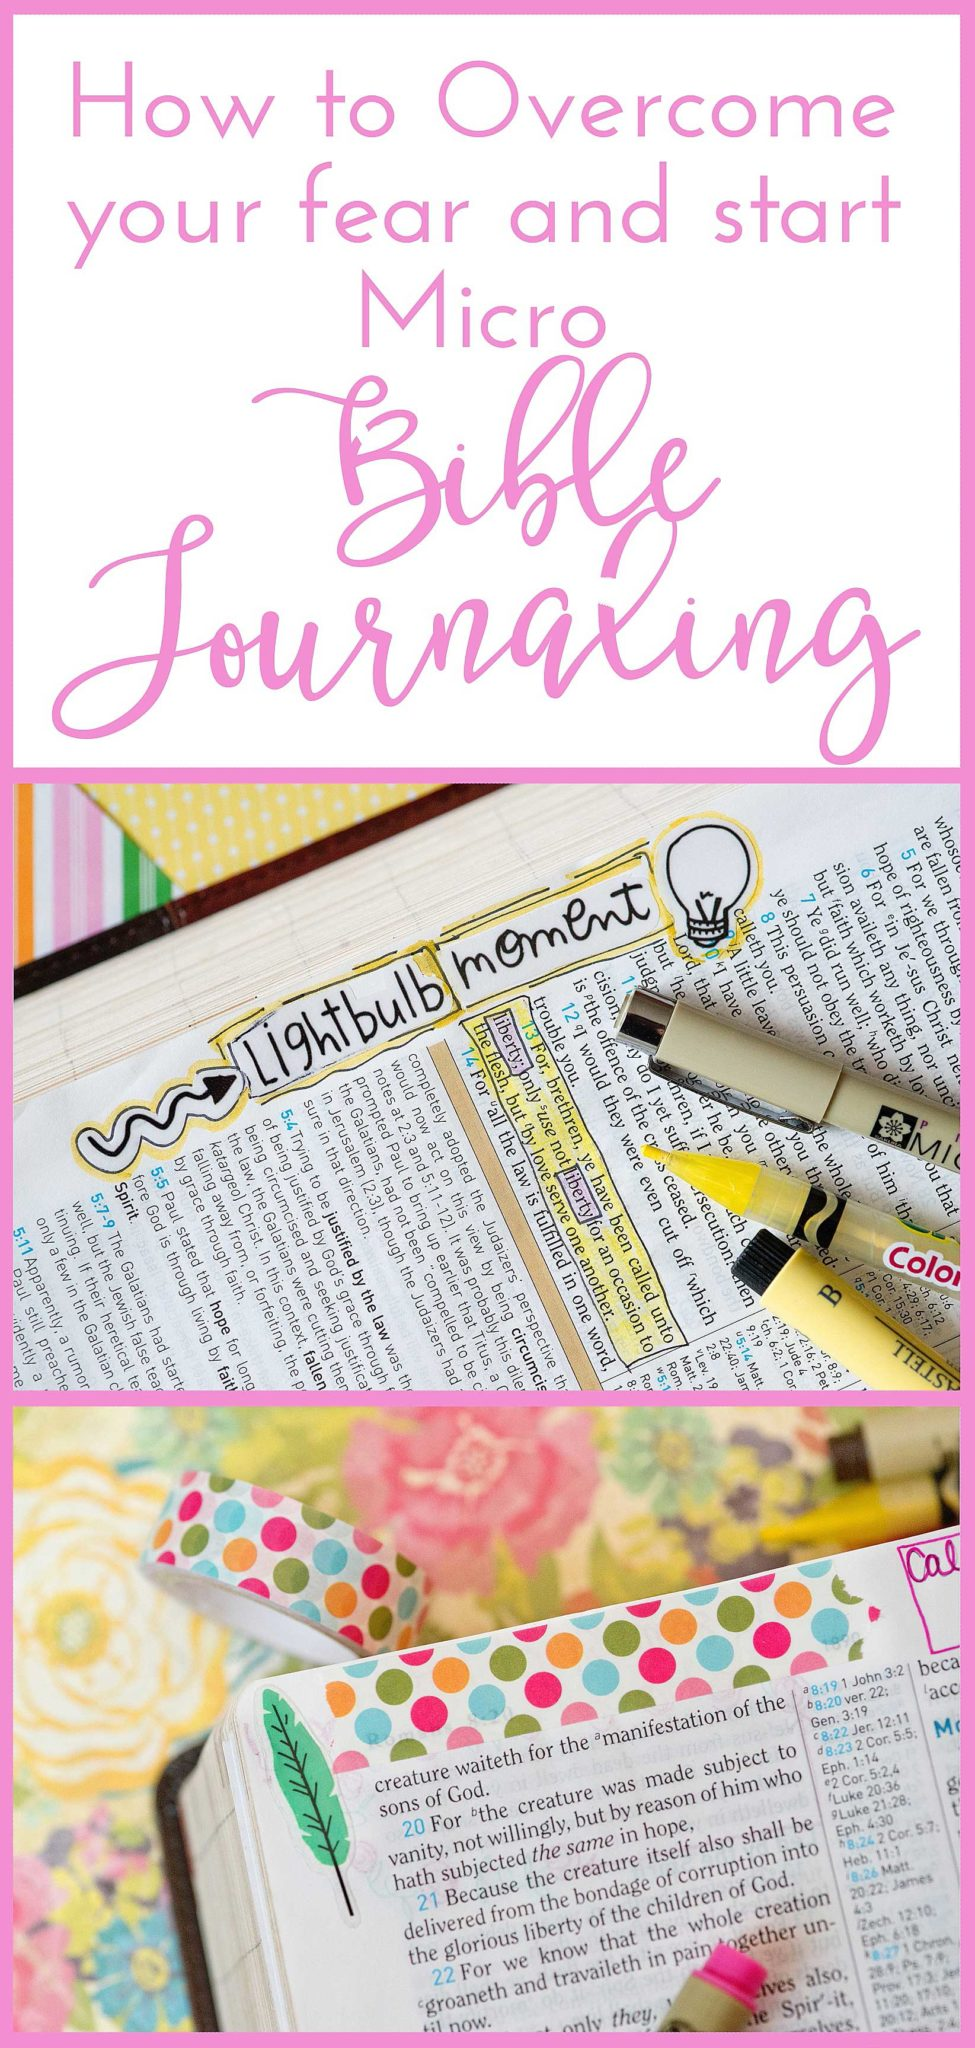 How to Overcome your Fear and Start Micro Bible Journaling in the Margins